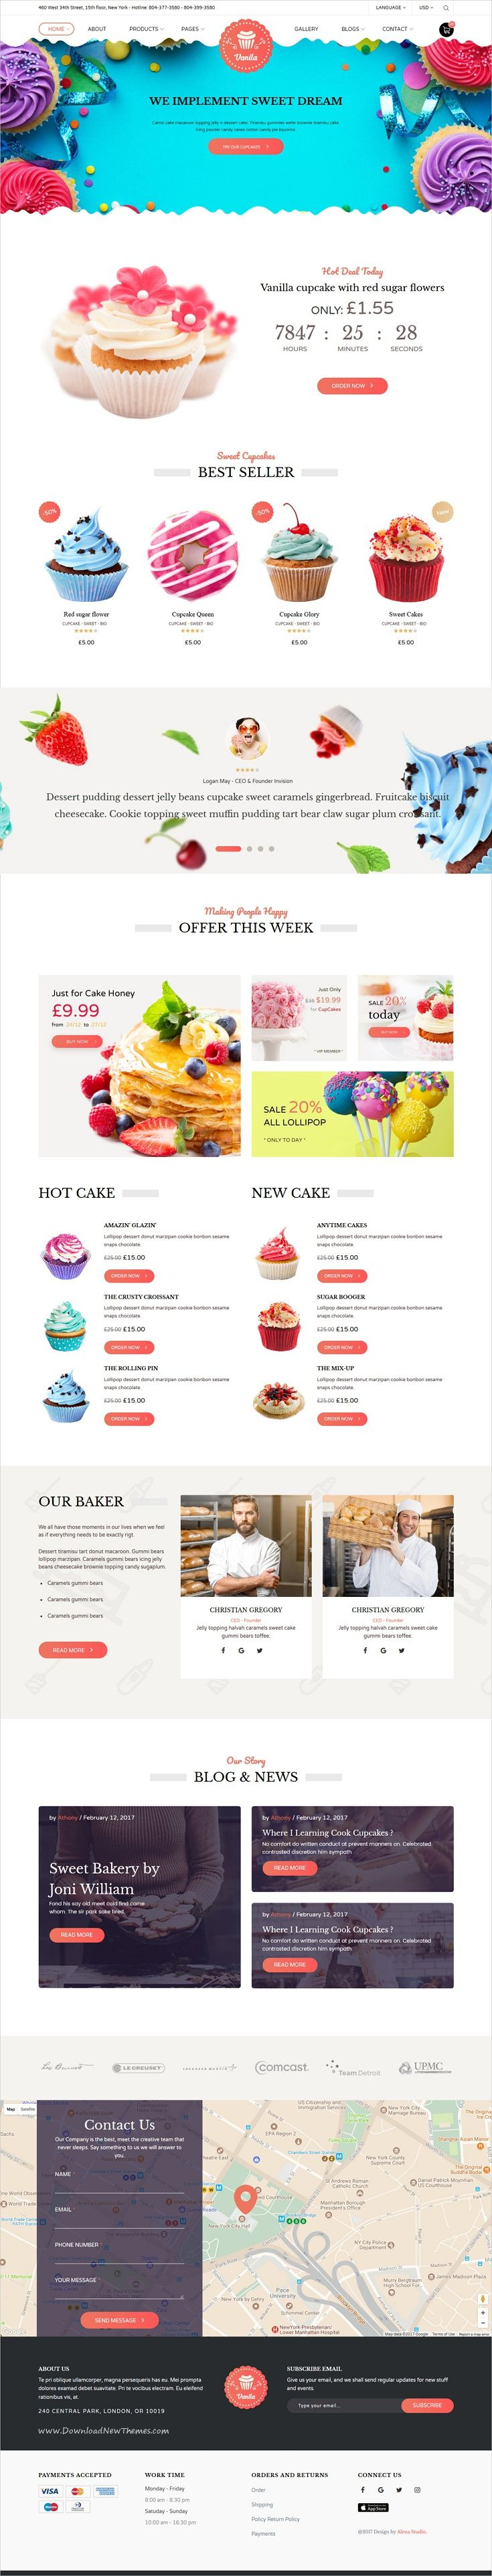 Vanila is an elegant and deliciously design 3in1 #bootstrap template for #bakery and #cake shop website download now➩ https://themeforest.net/item/bakery-vanila-cakery-bakery-html5-template/19842945?ref=Datasata